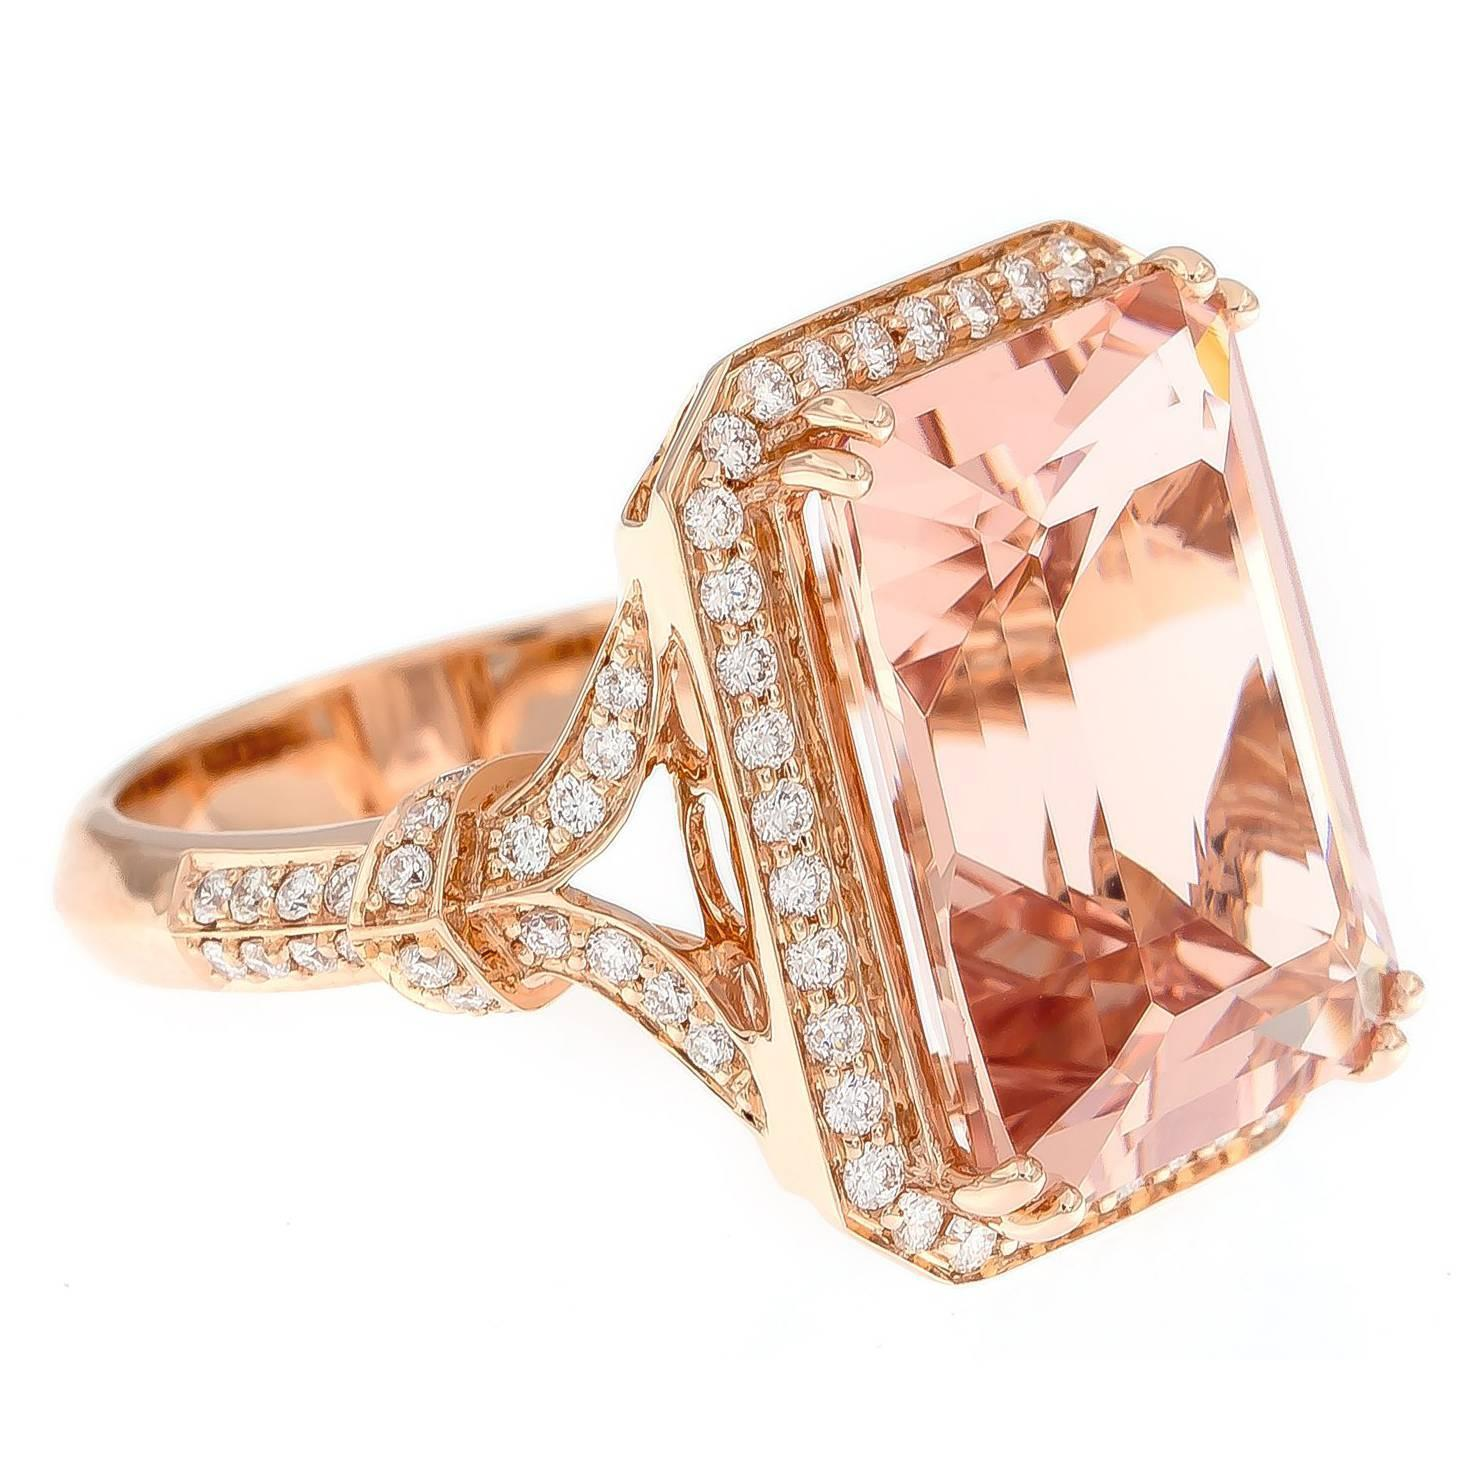 10 29 Carat Morganite and Diamond Gold Ring For Sale at 1stdibs